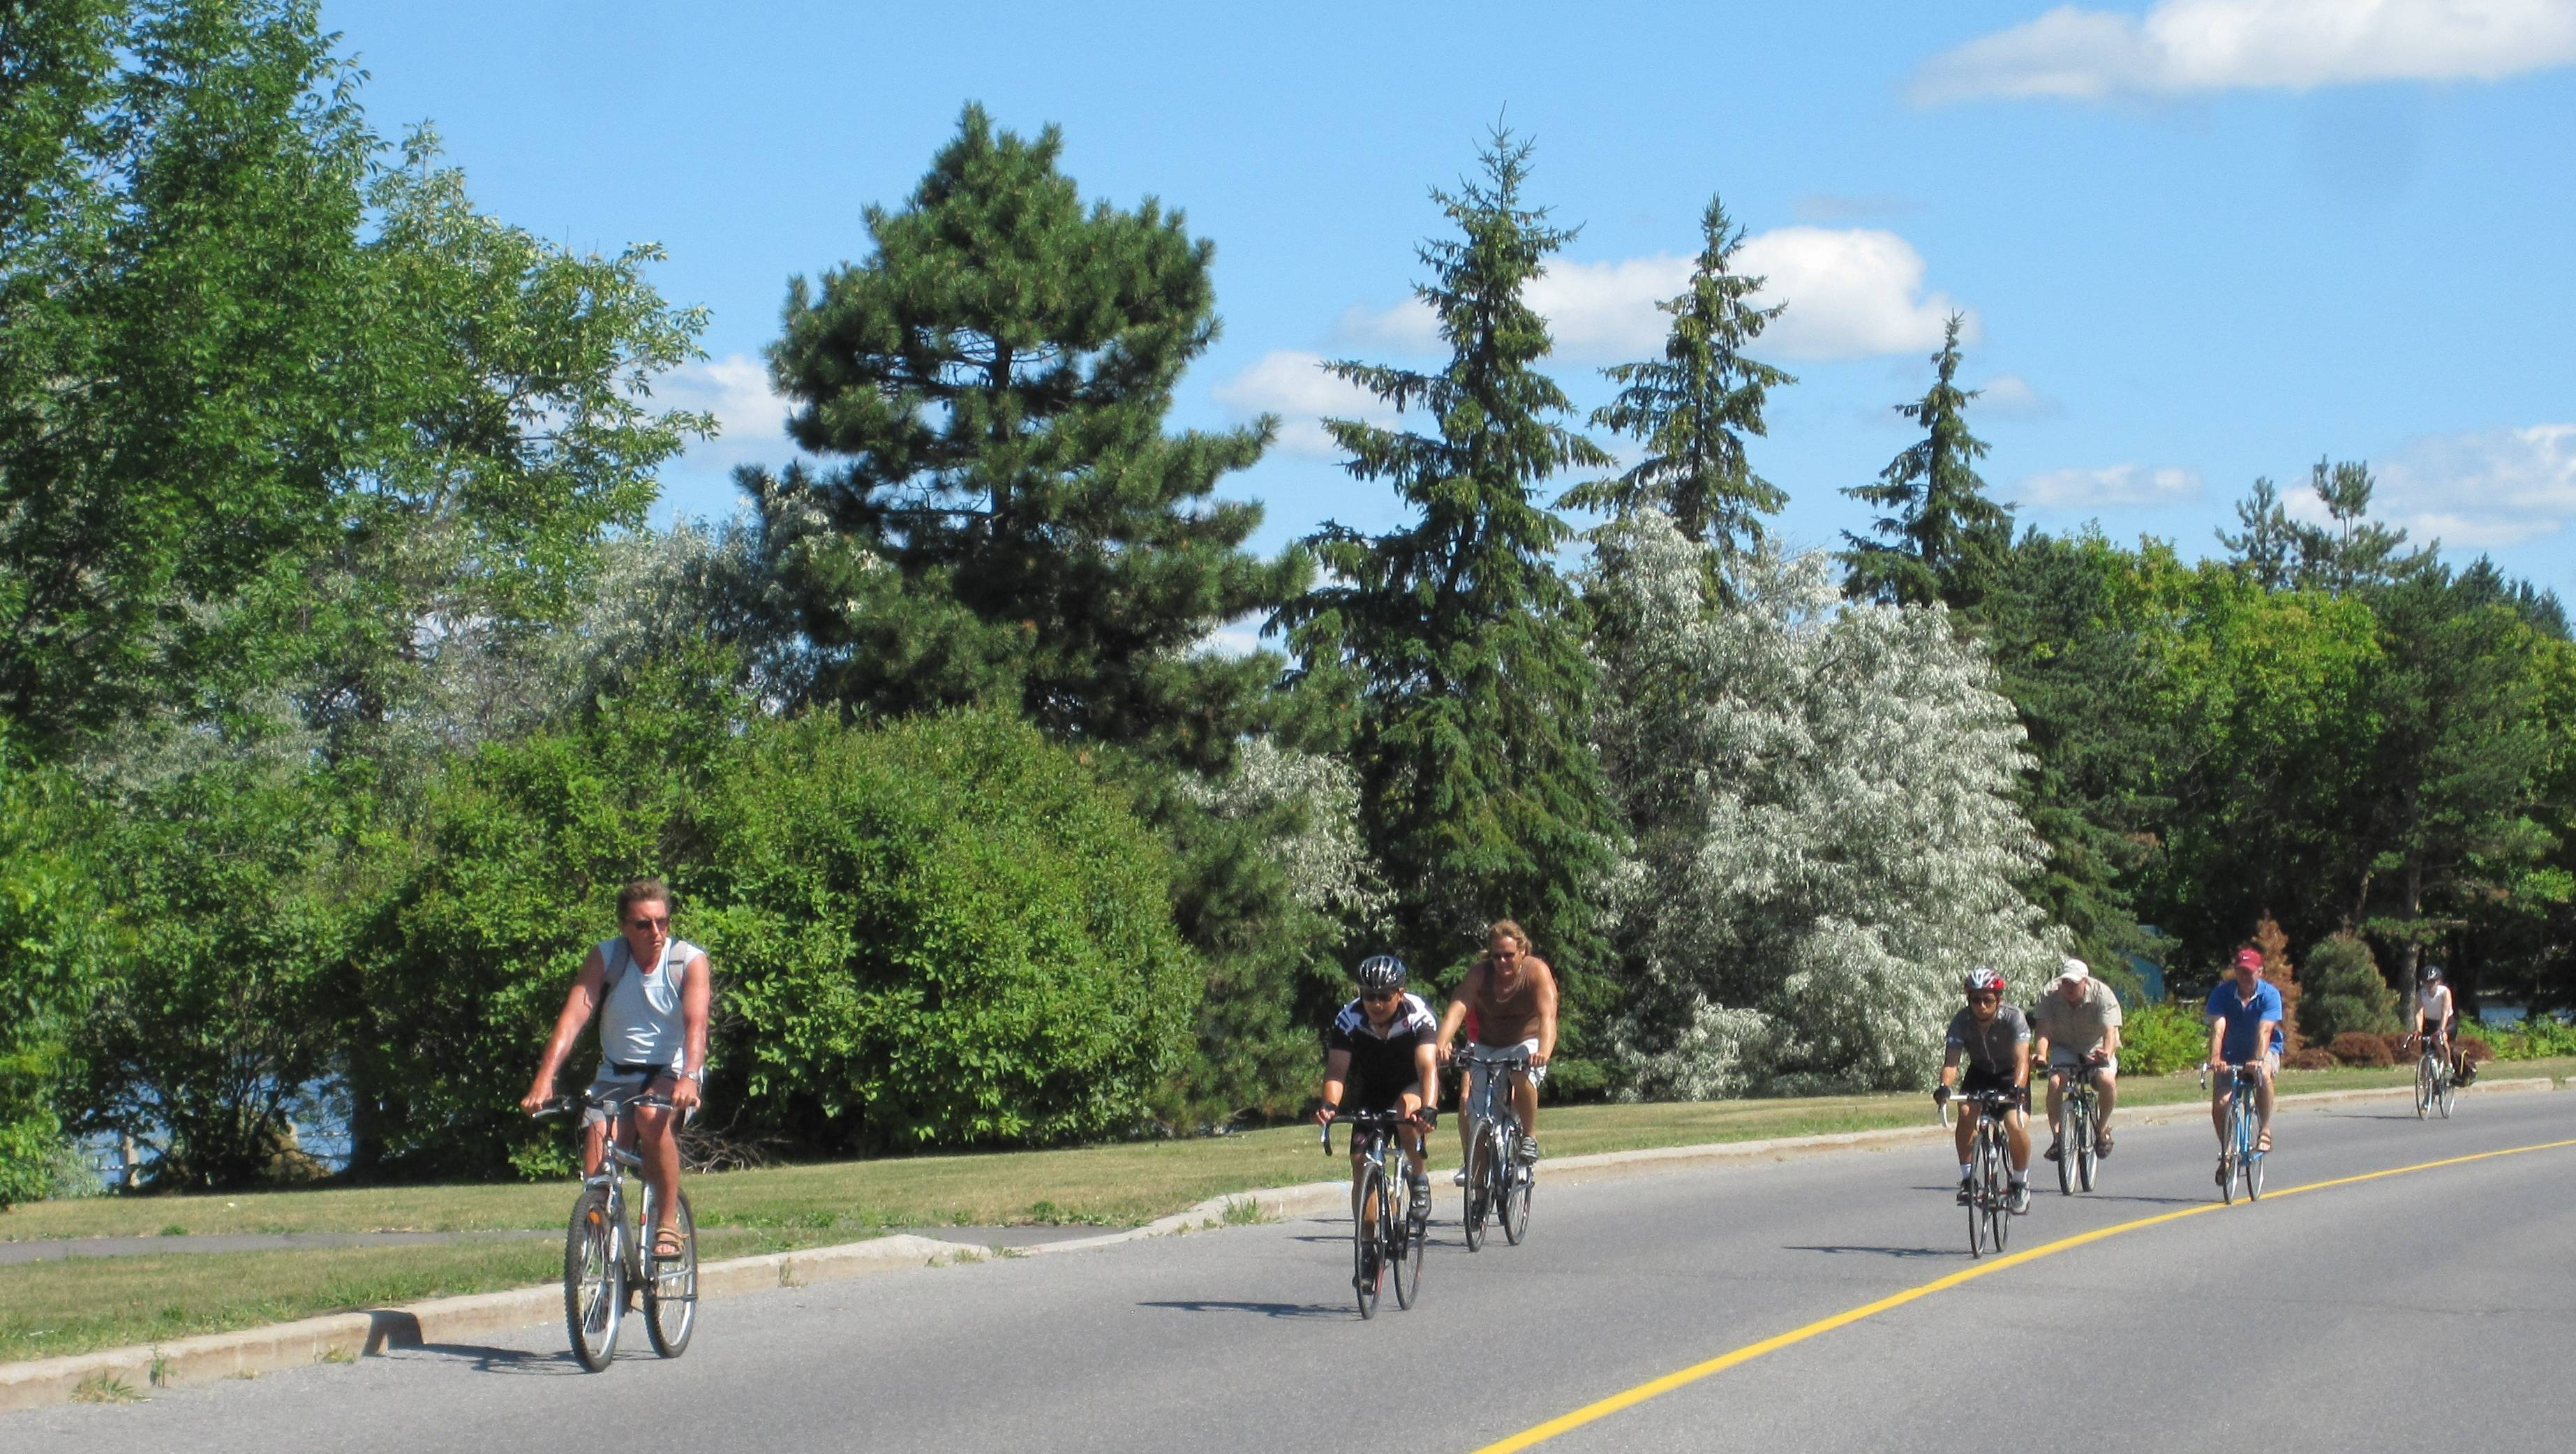 2011-07-24-ottawa-bicycle-culture-8